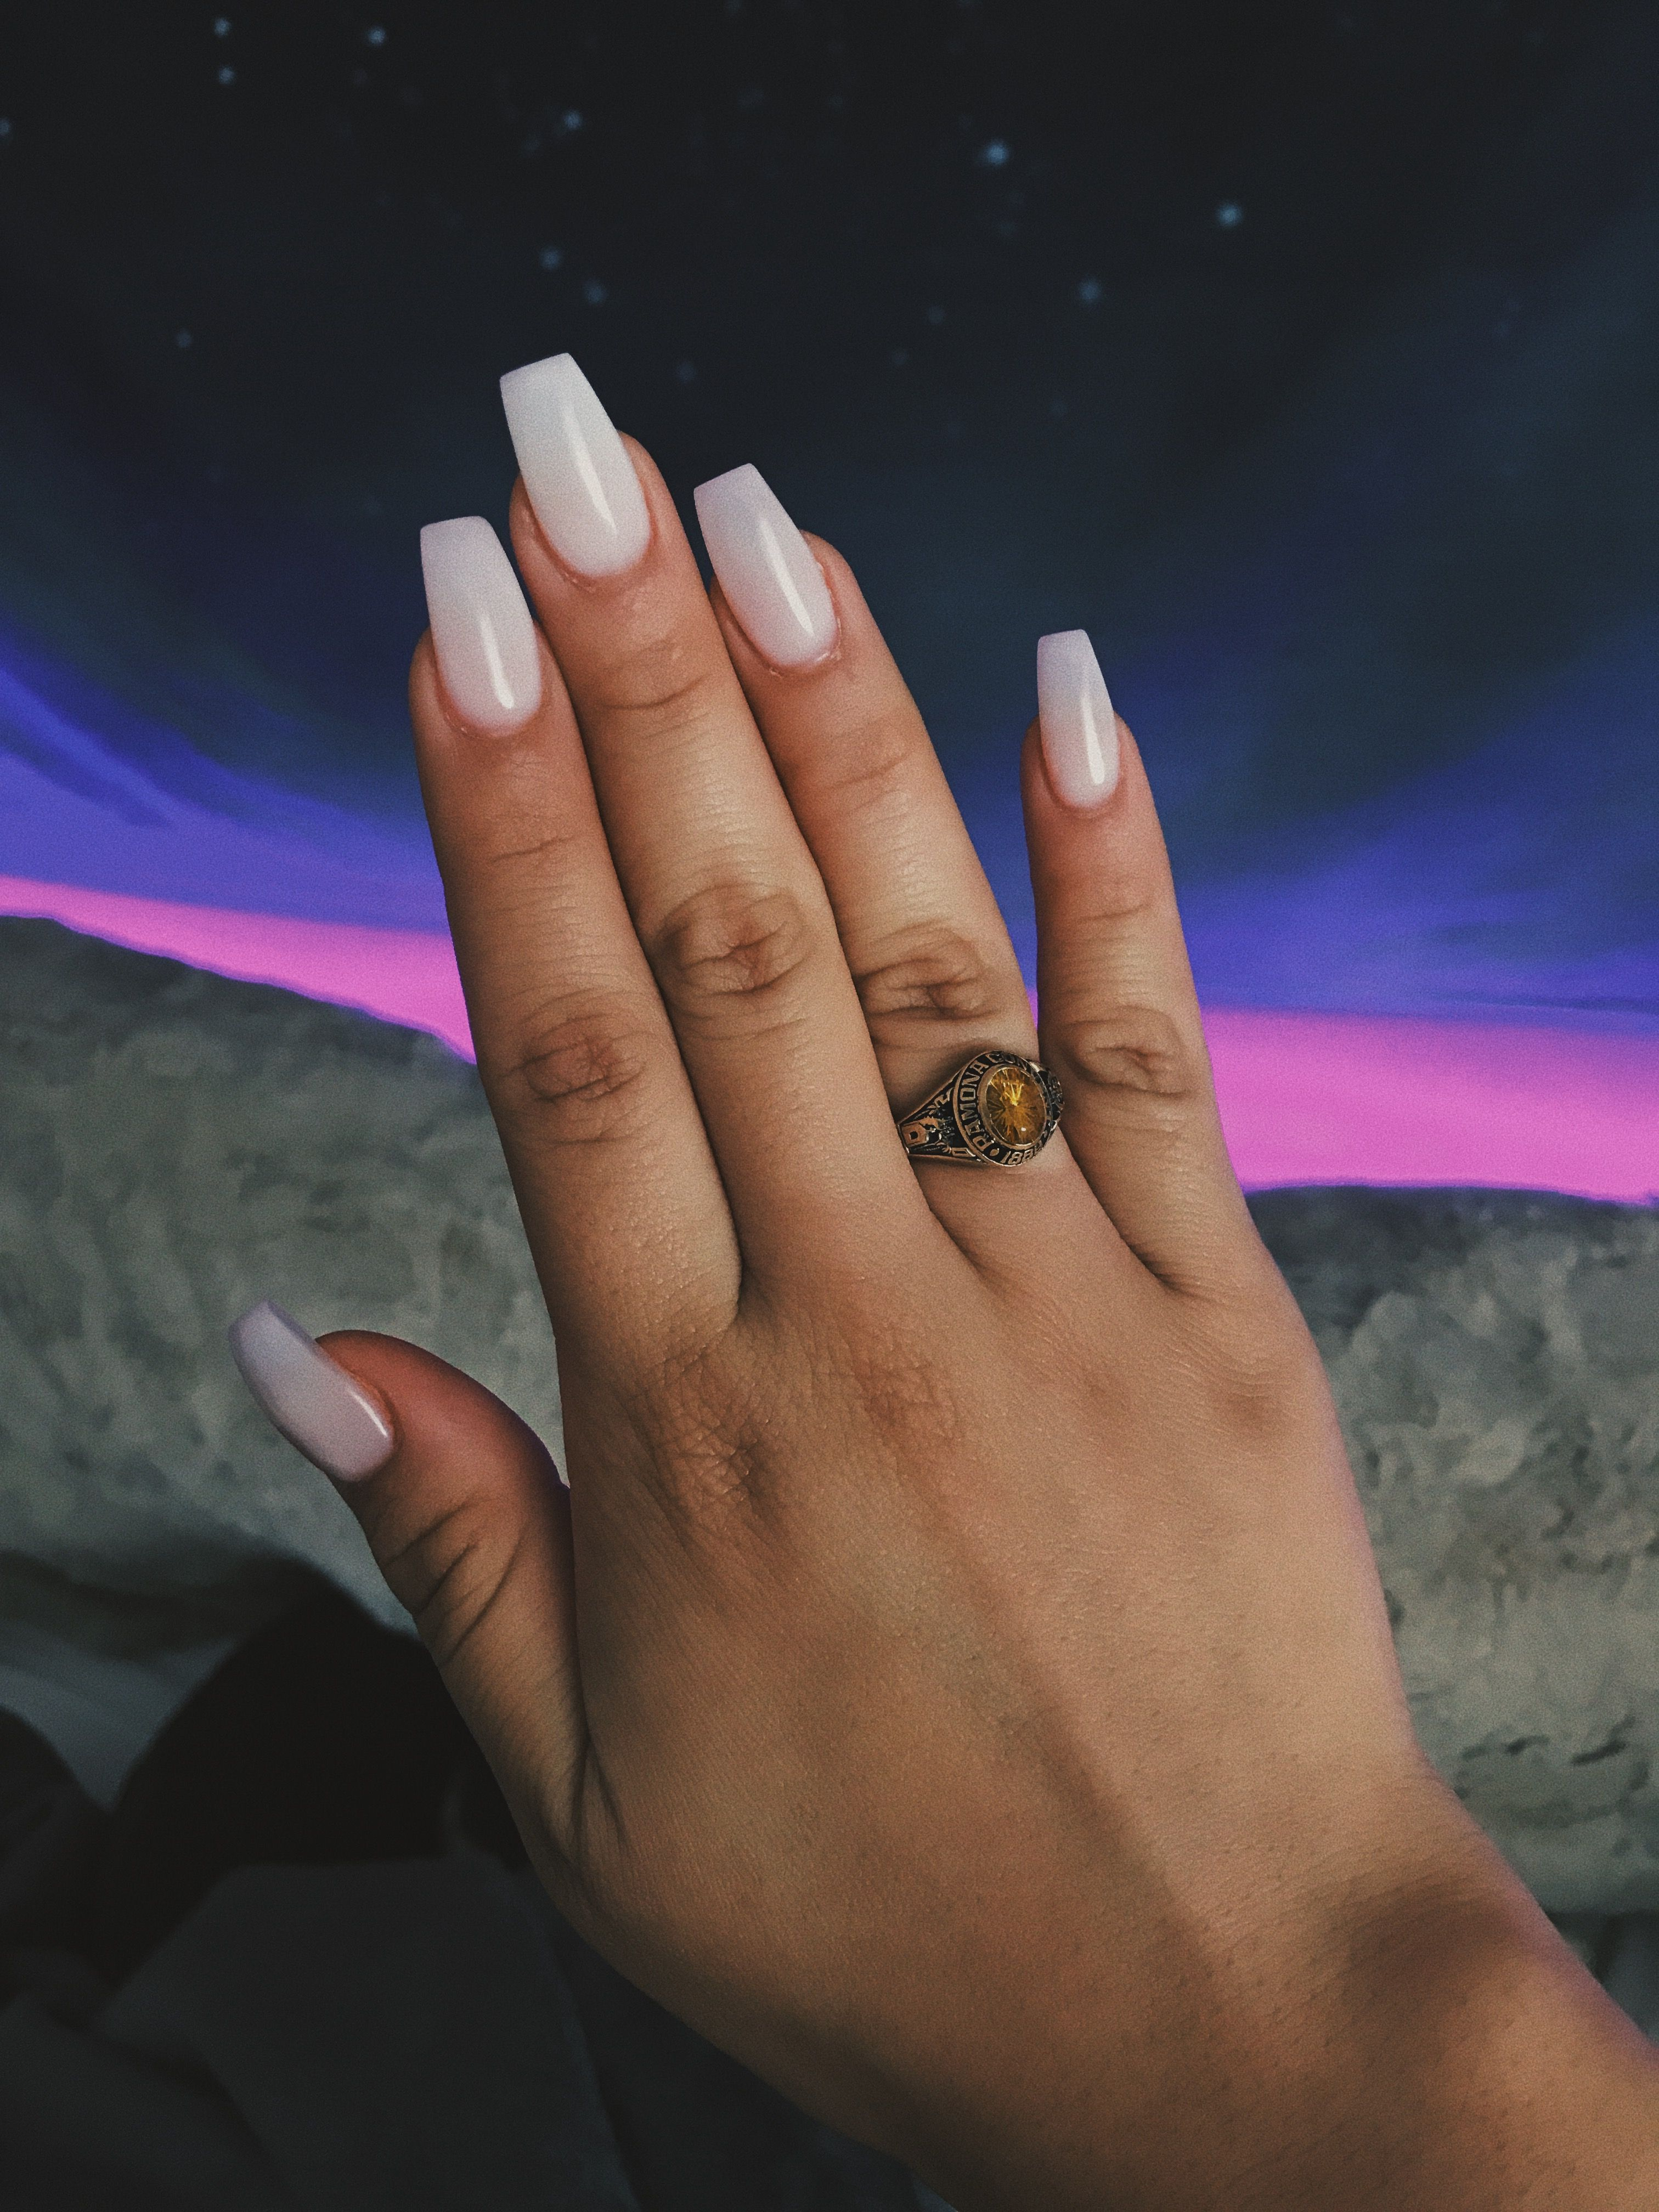 Clear White Squared Coffin Acrylic Nails Nut White Acrylic Nails Coffin Acrylic Dip Nails Clear Acrylic Nails